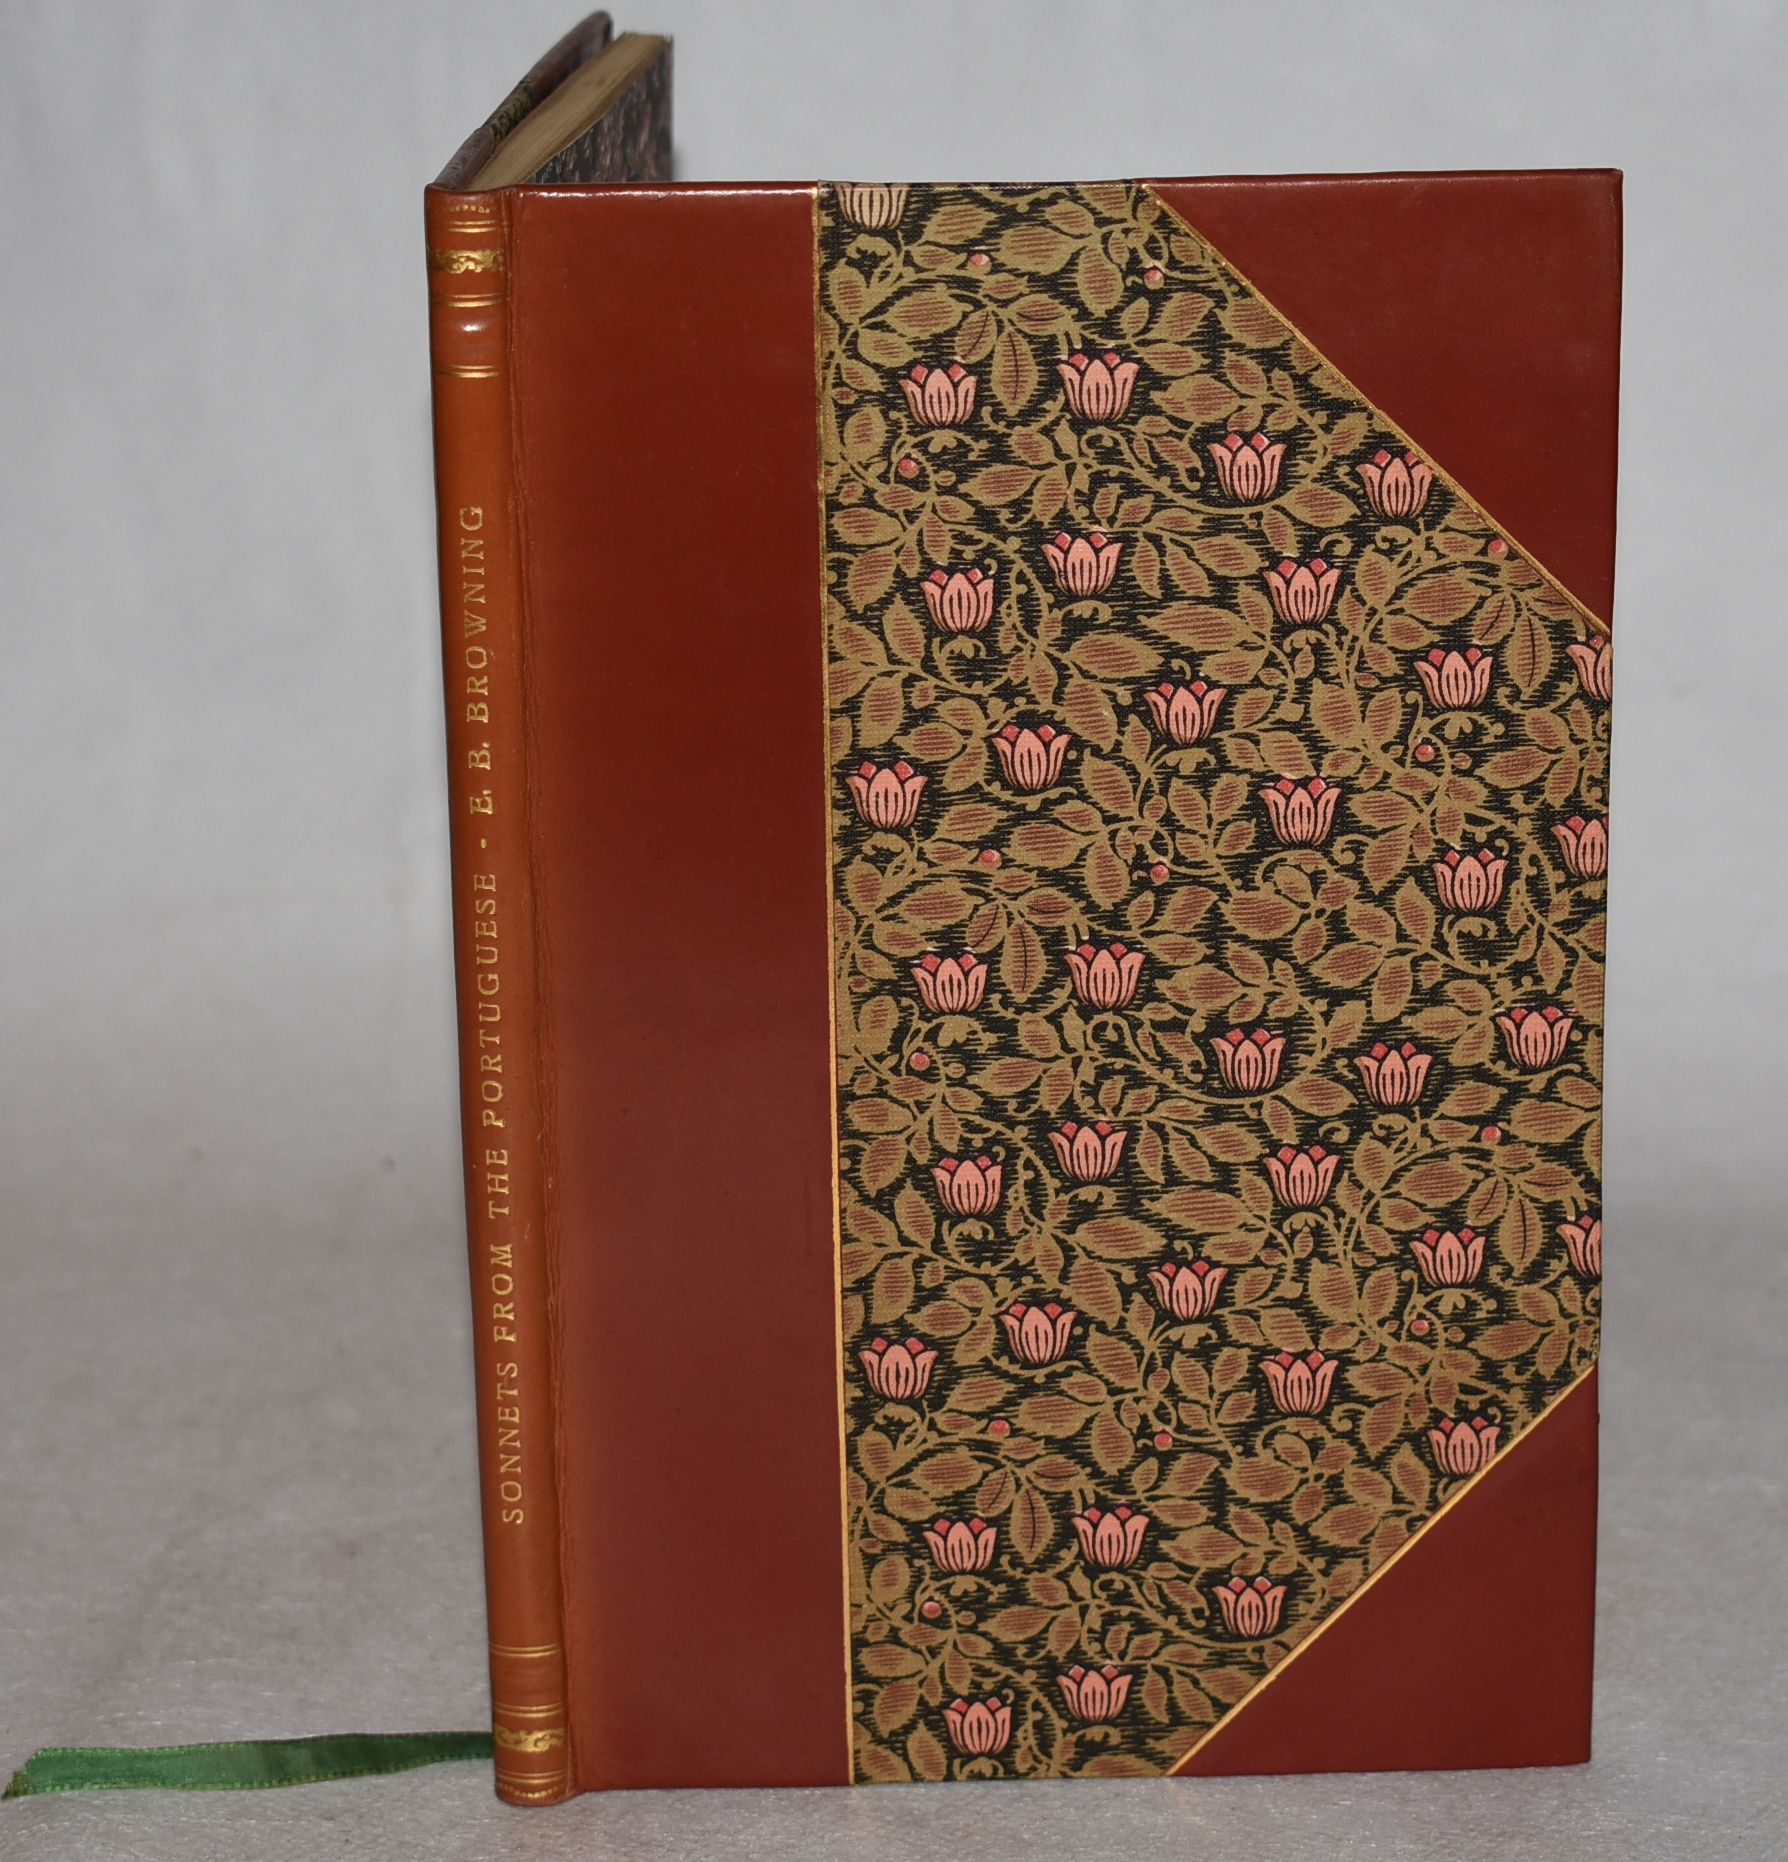 Image for Sonnets from the Portuguese. In Stunning Leather Fine Binding.